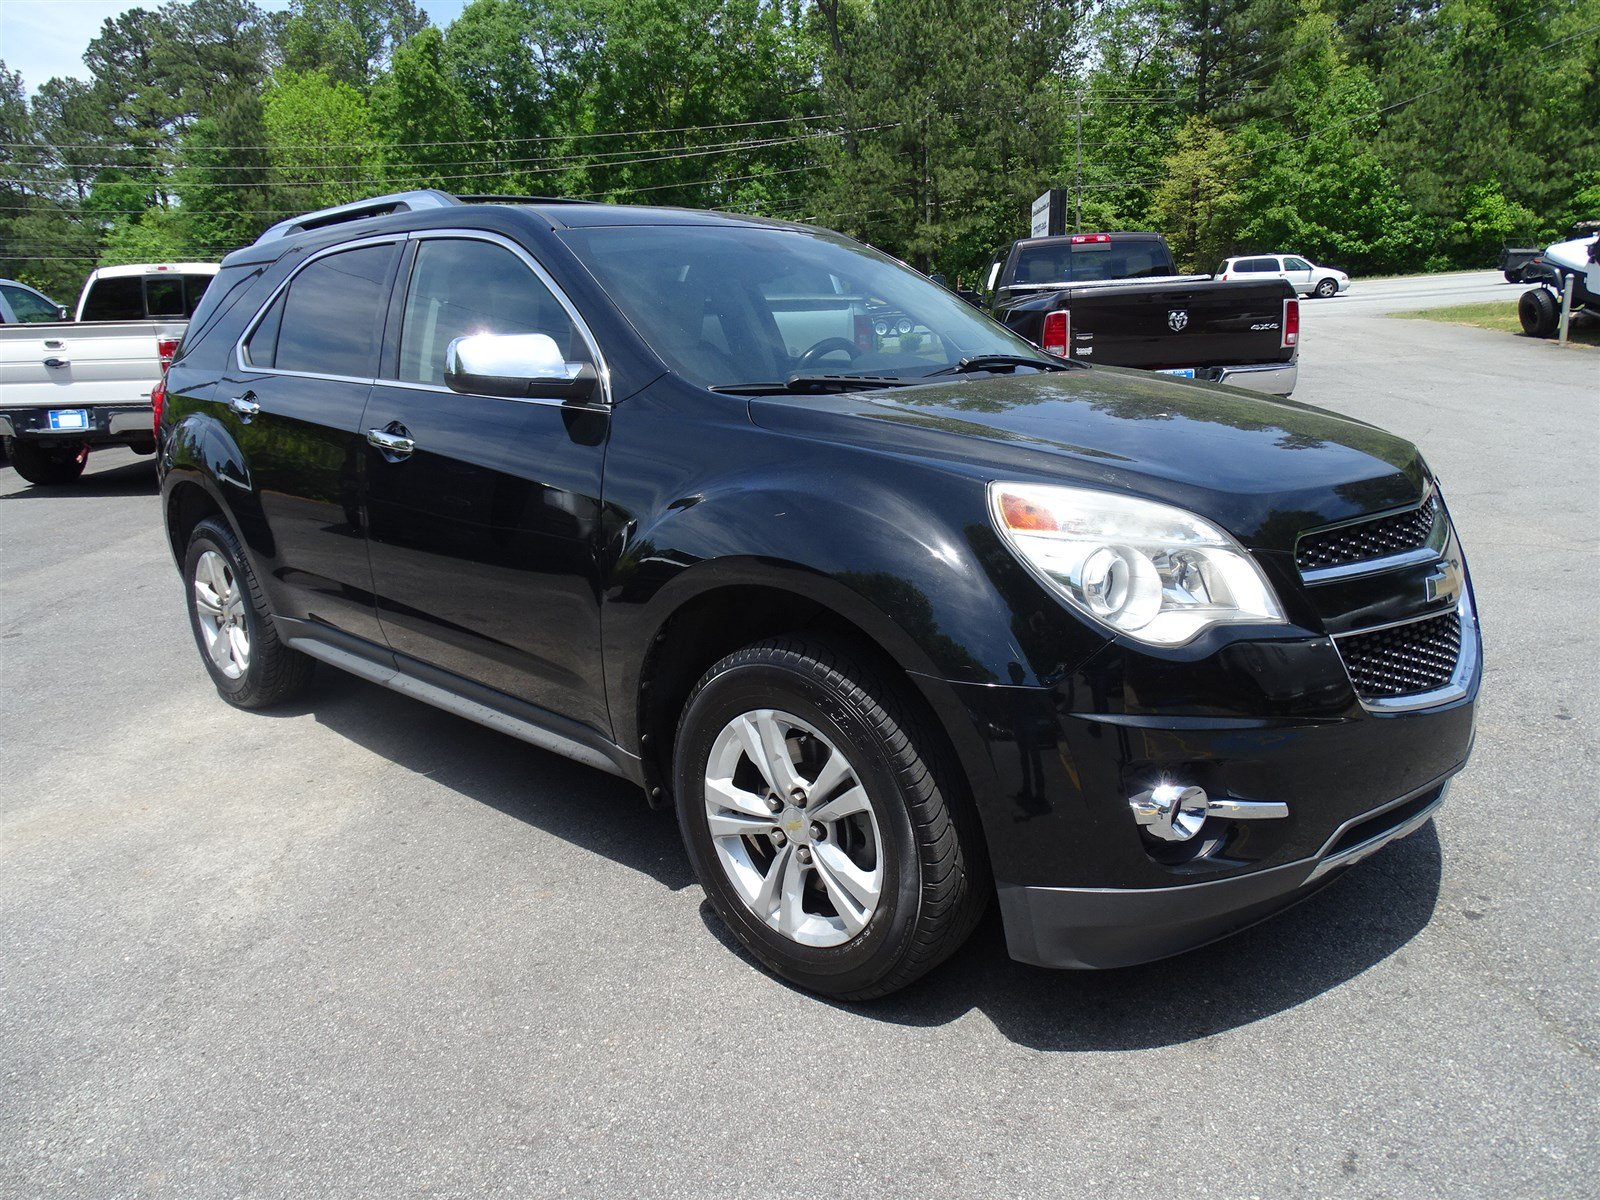 2011 Chevrolet Equinox LTZ  Rearview Camera System Automatic Climate Control Radio AMFM Stere